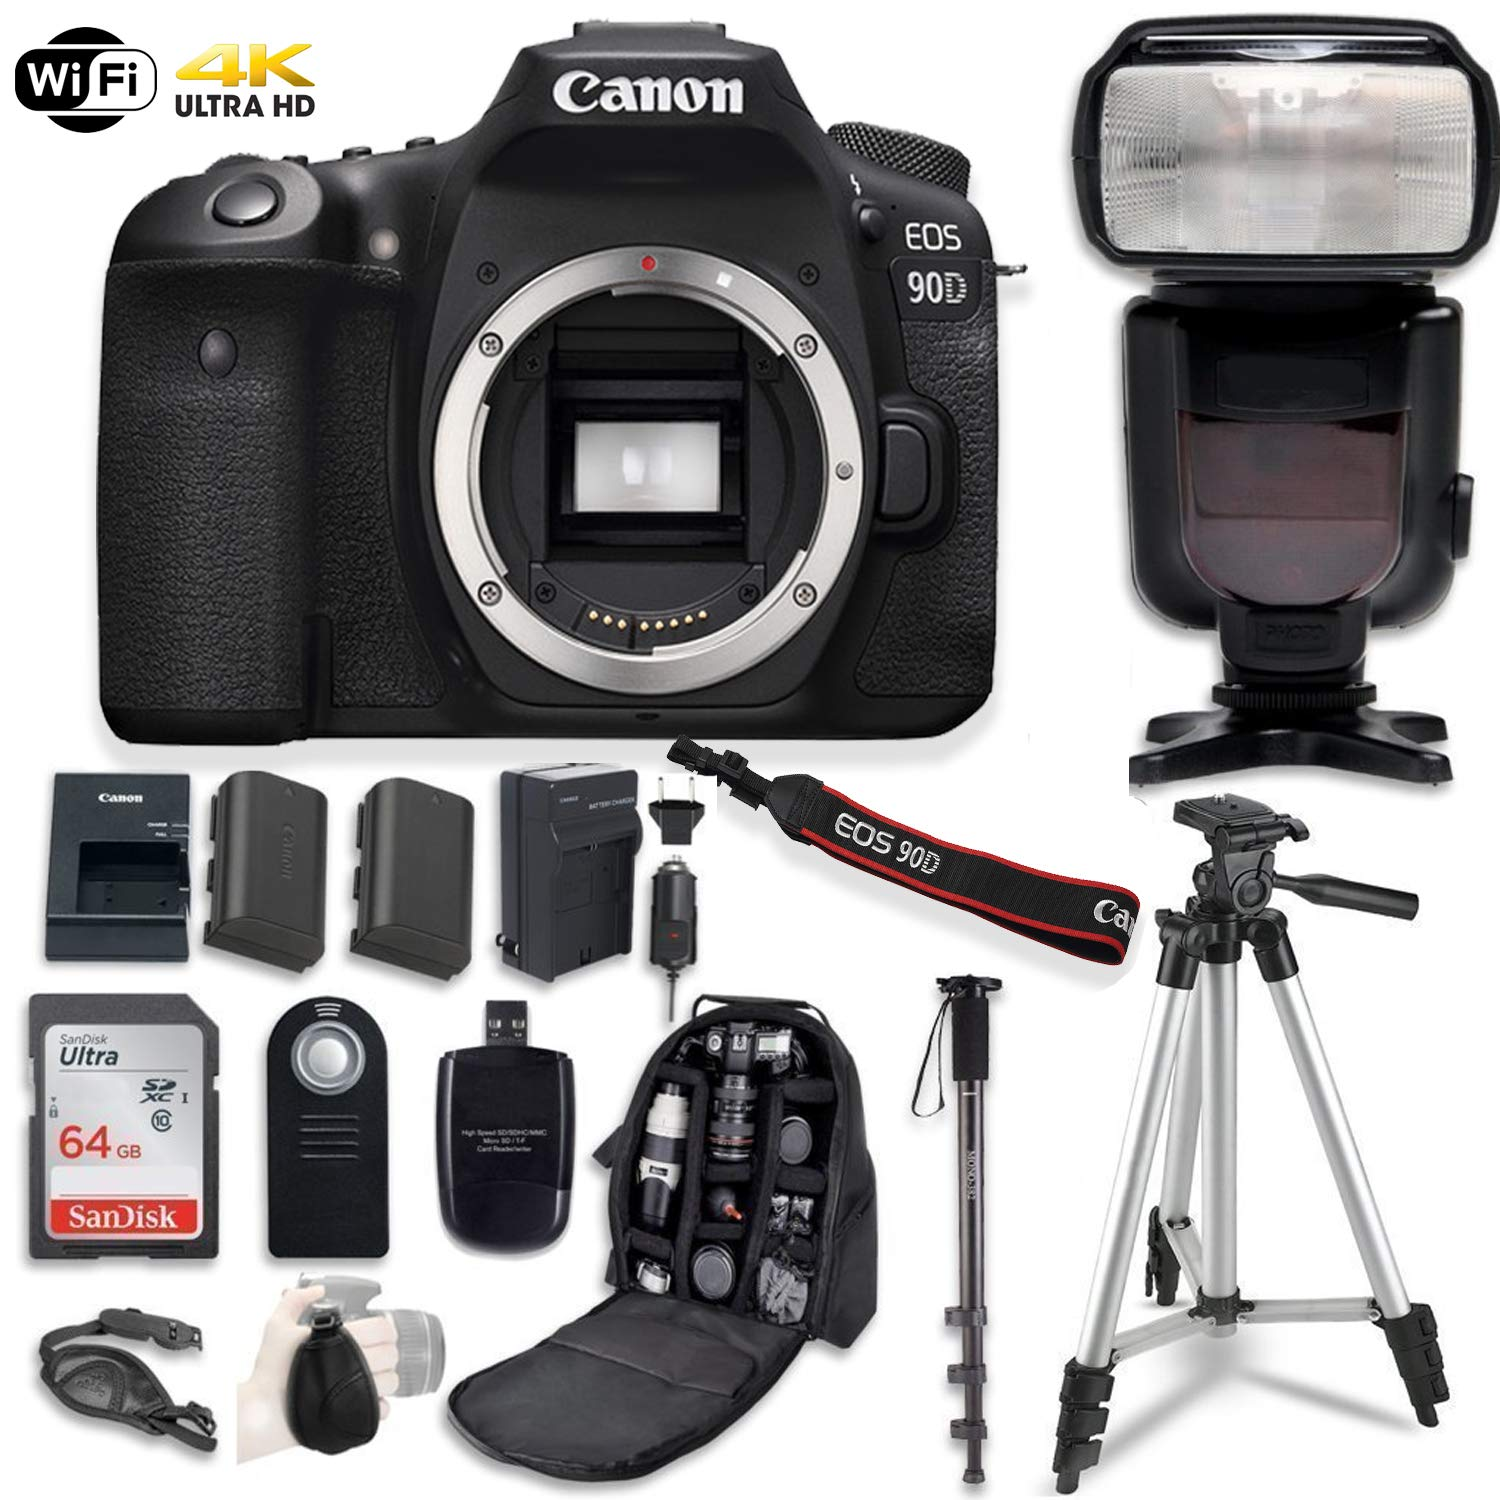 Canon EOS 90D Digital SLR Camera Bundle (Body Only) with Professional Accessory Bundle (14 Items) by Canon